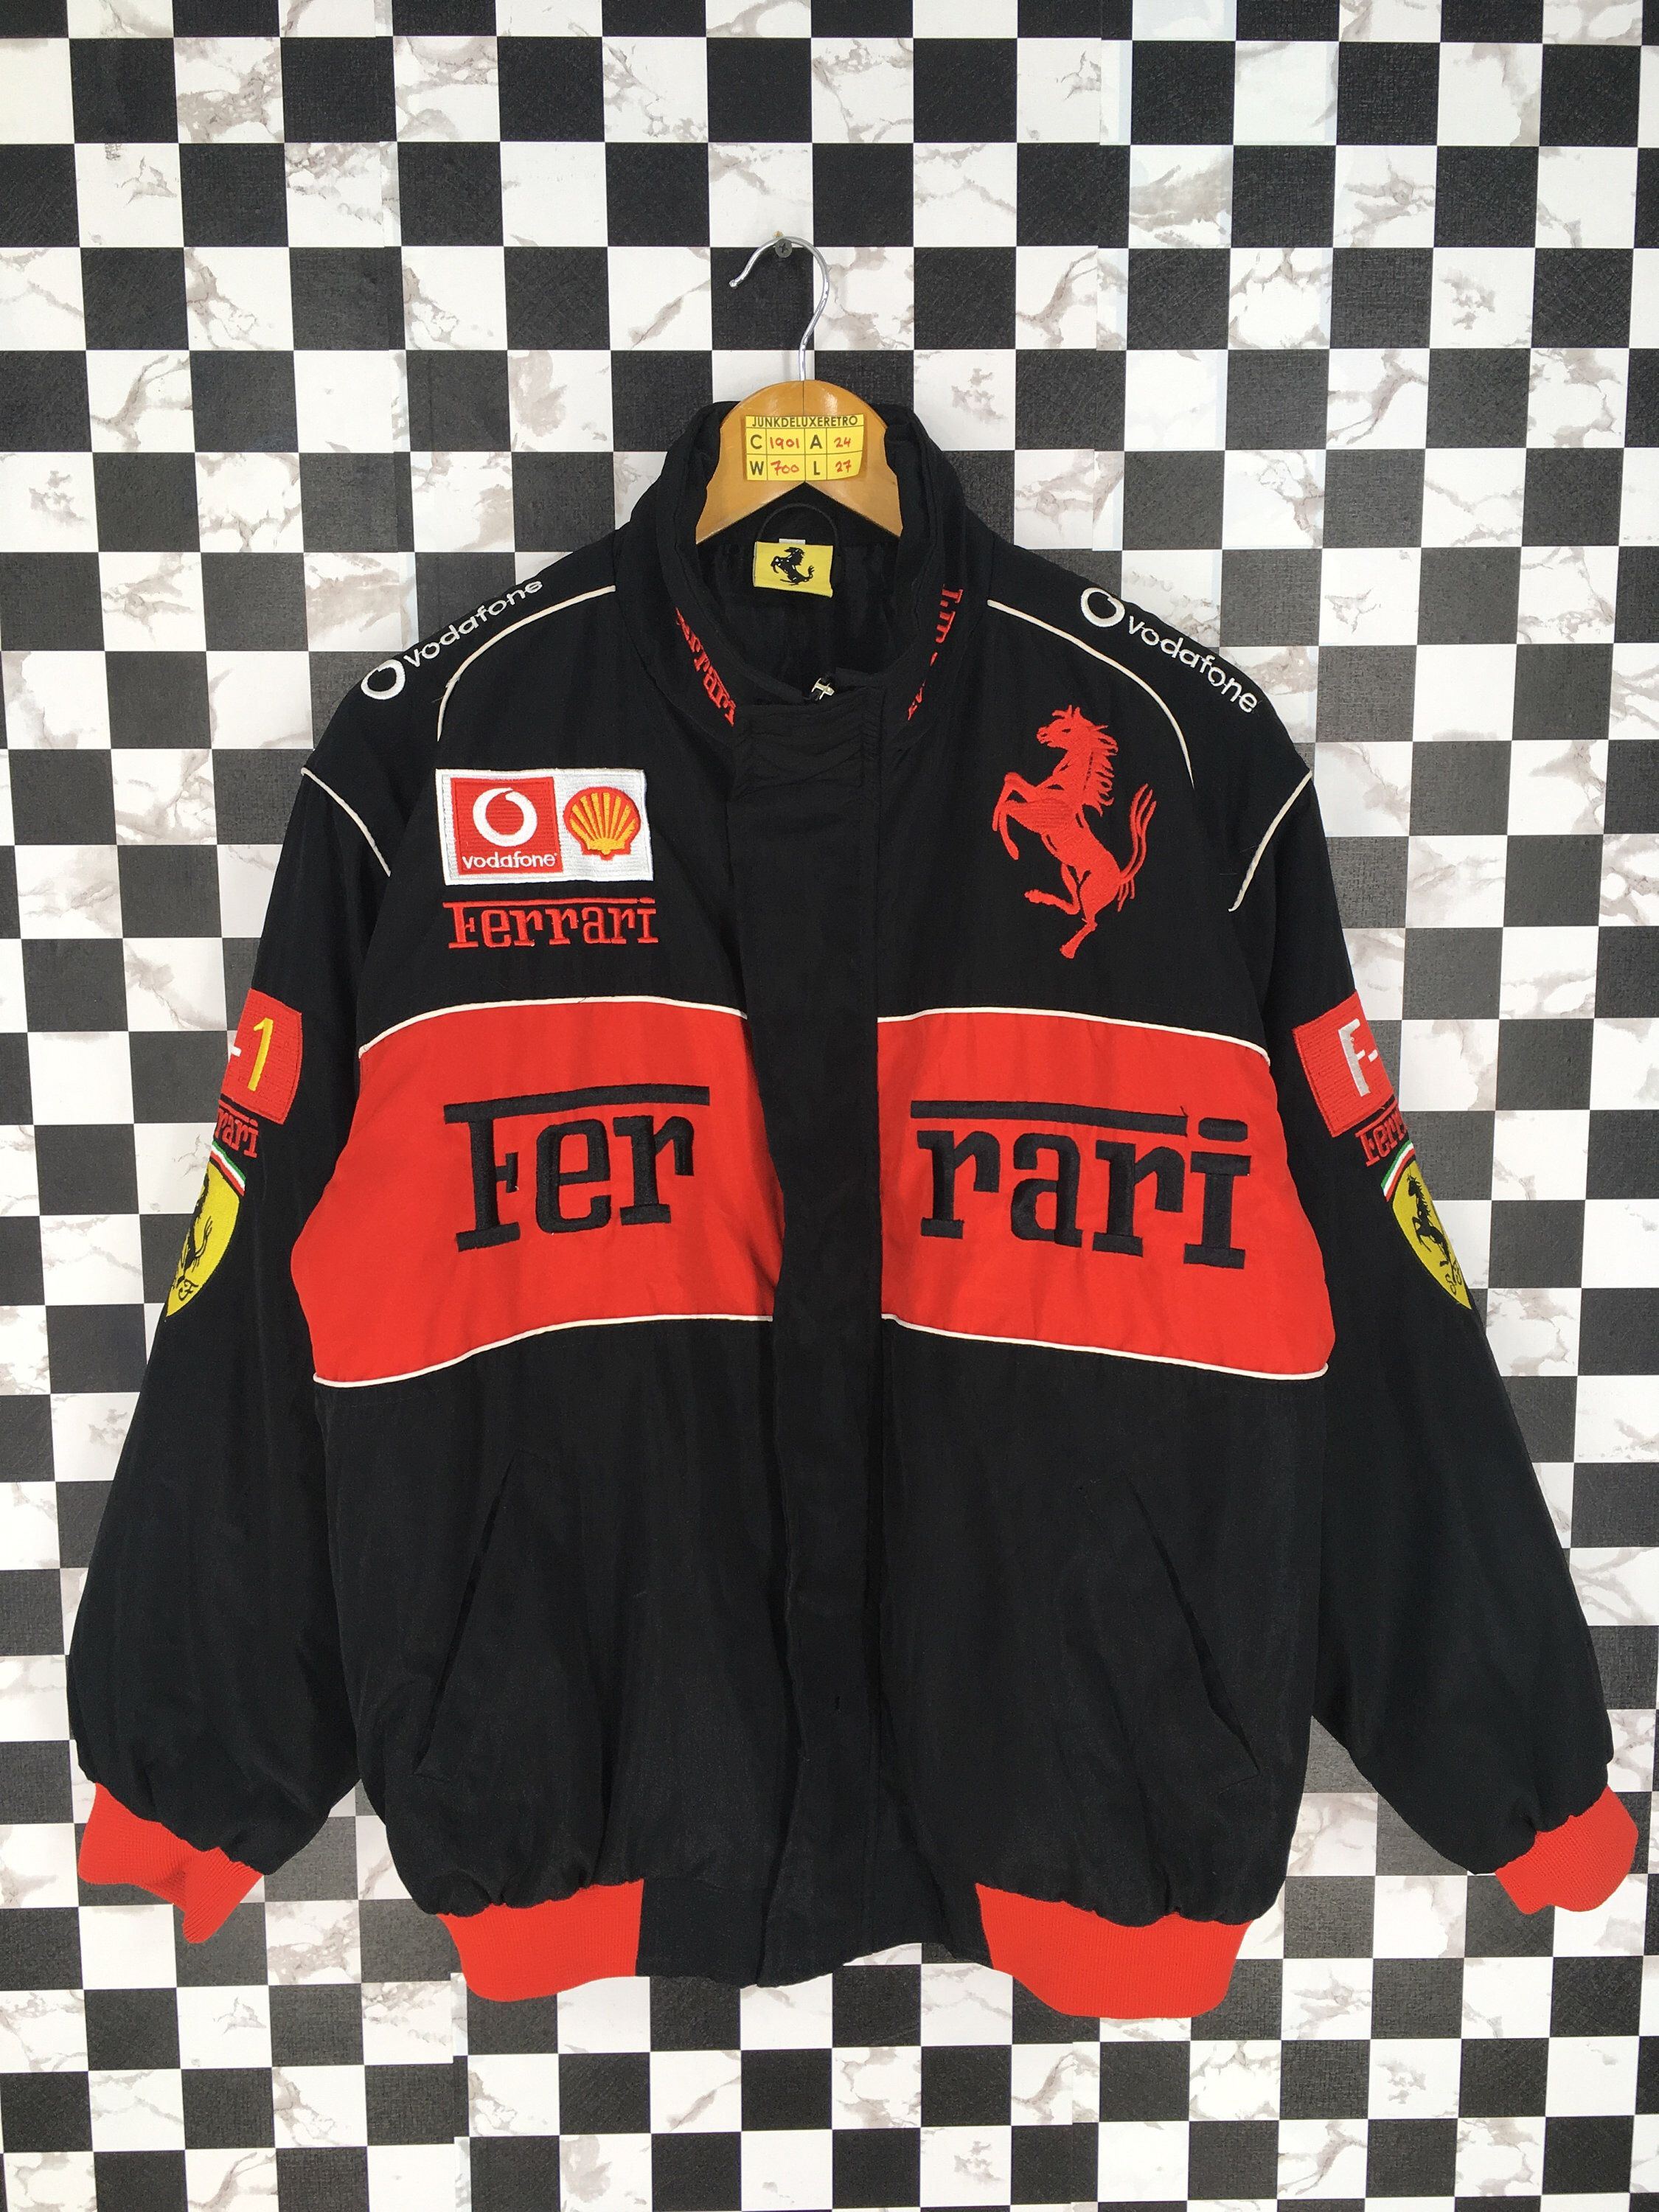 Excited To Share This Item From My Etsy Shop Ferrari Bomber Jacket Medium F1 Team Vintage 9 Vintage Jacket Outfit Bomber Jacket Vintage Vintage Racing Jacket [ 3000 x 2250 Pixel ]